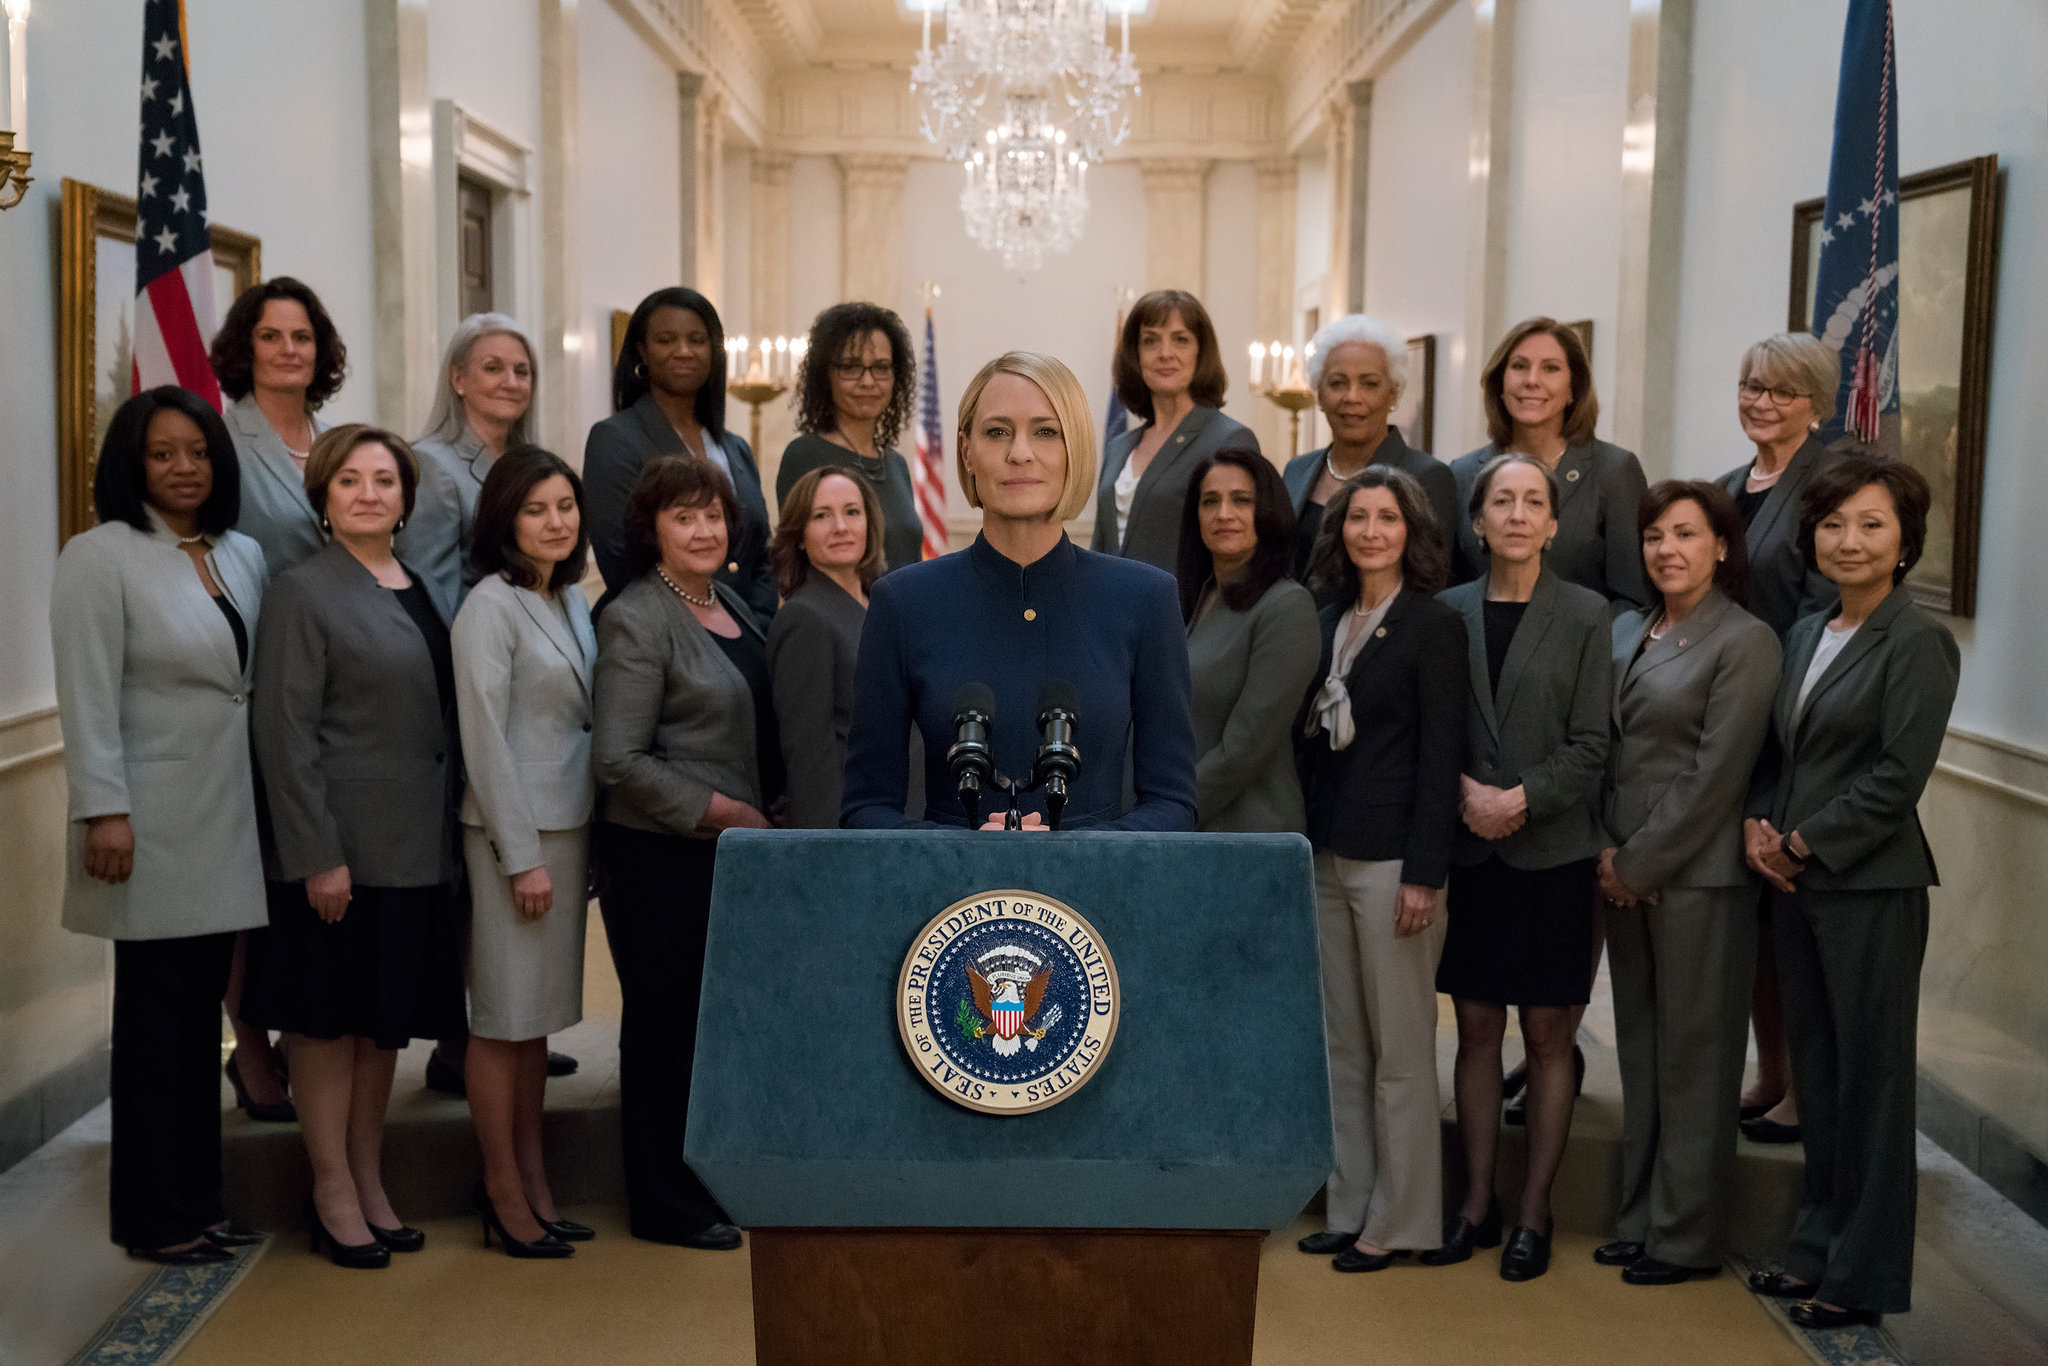 house of cards season 6 is getting